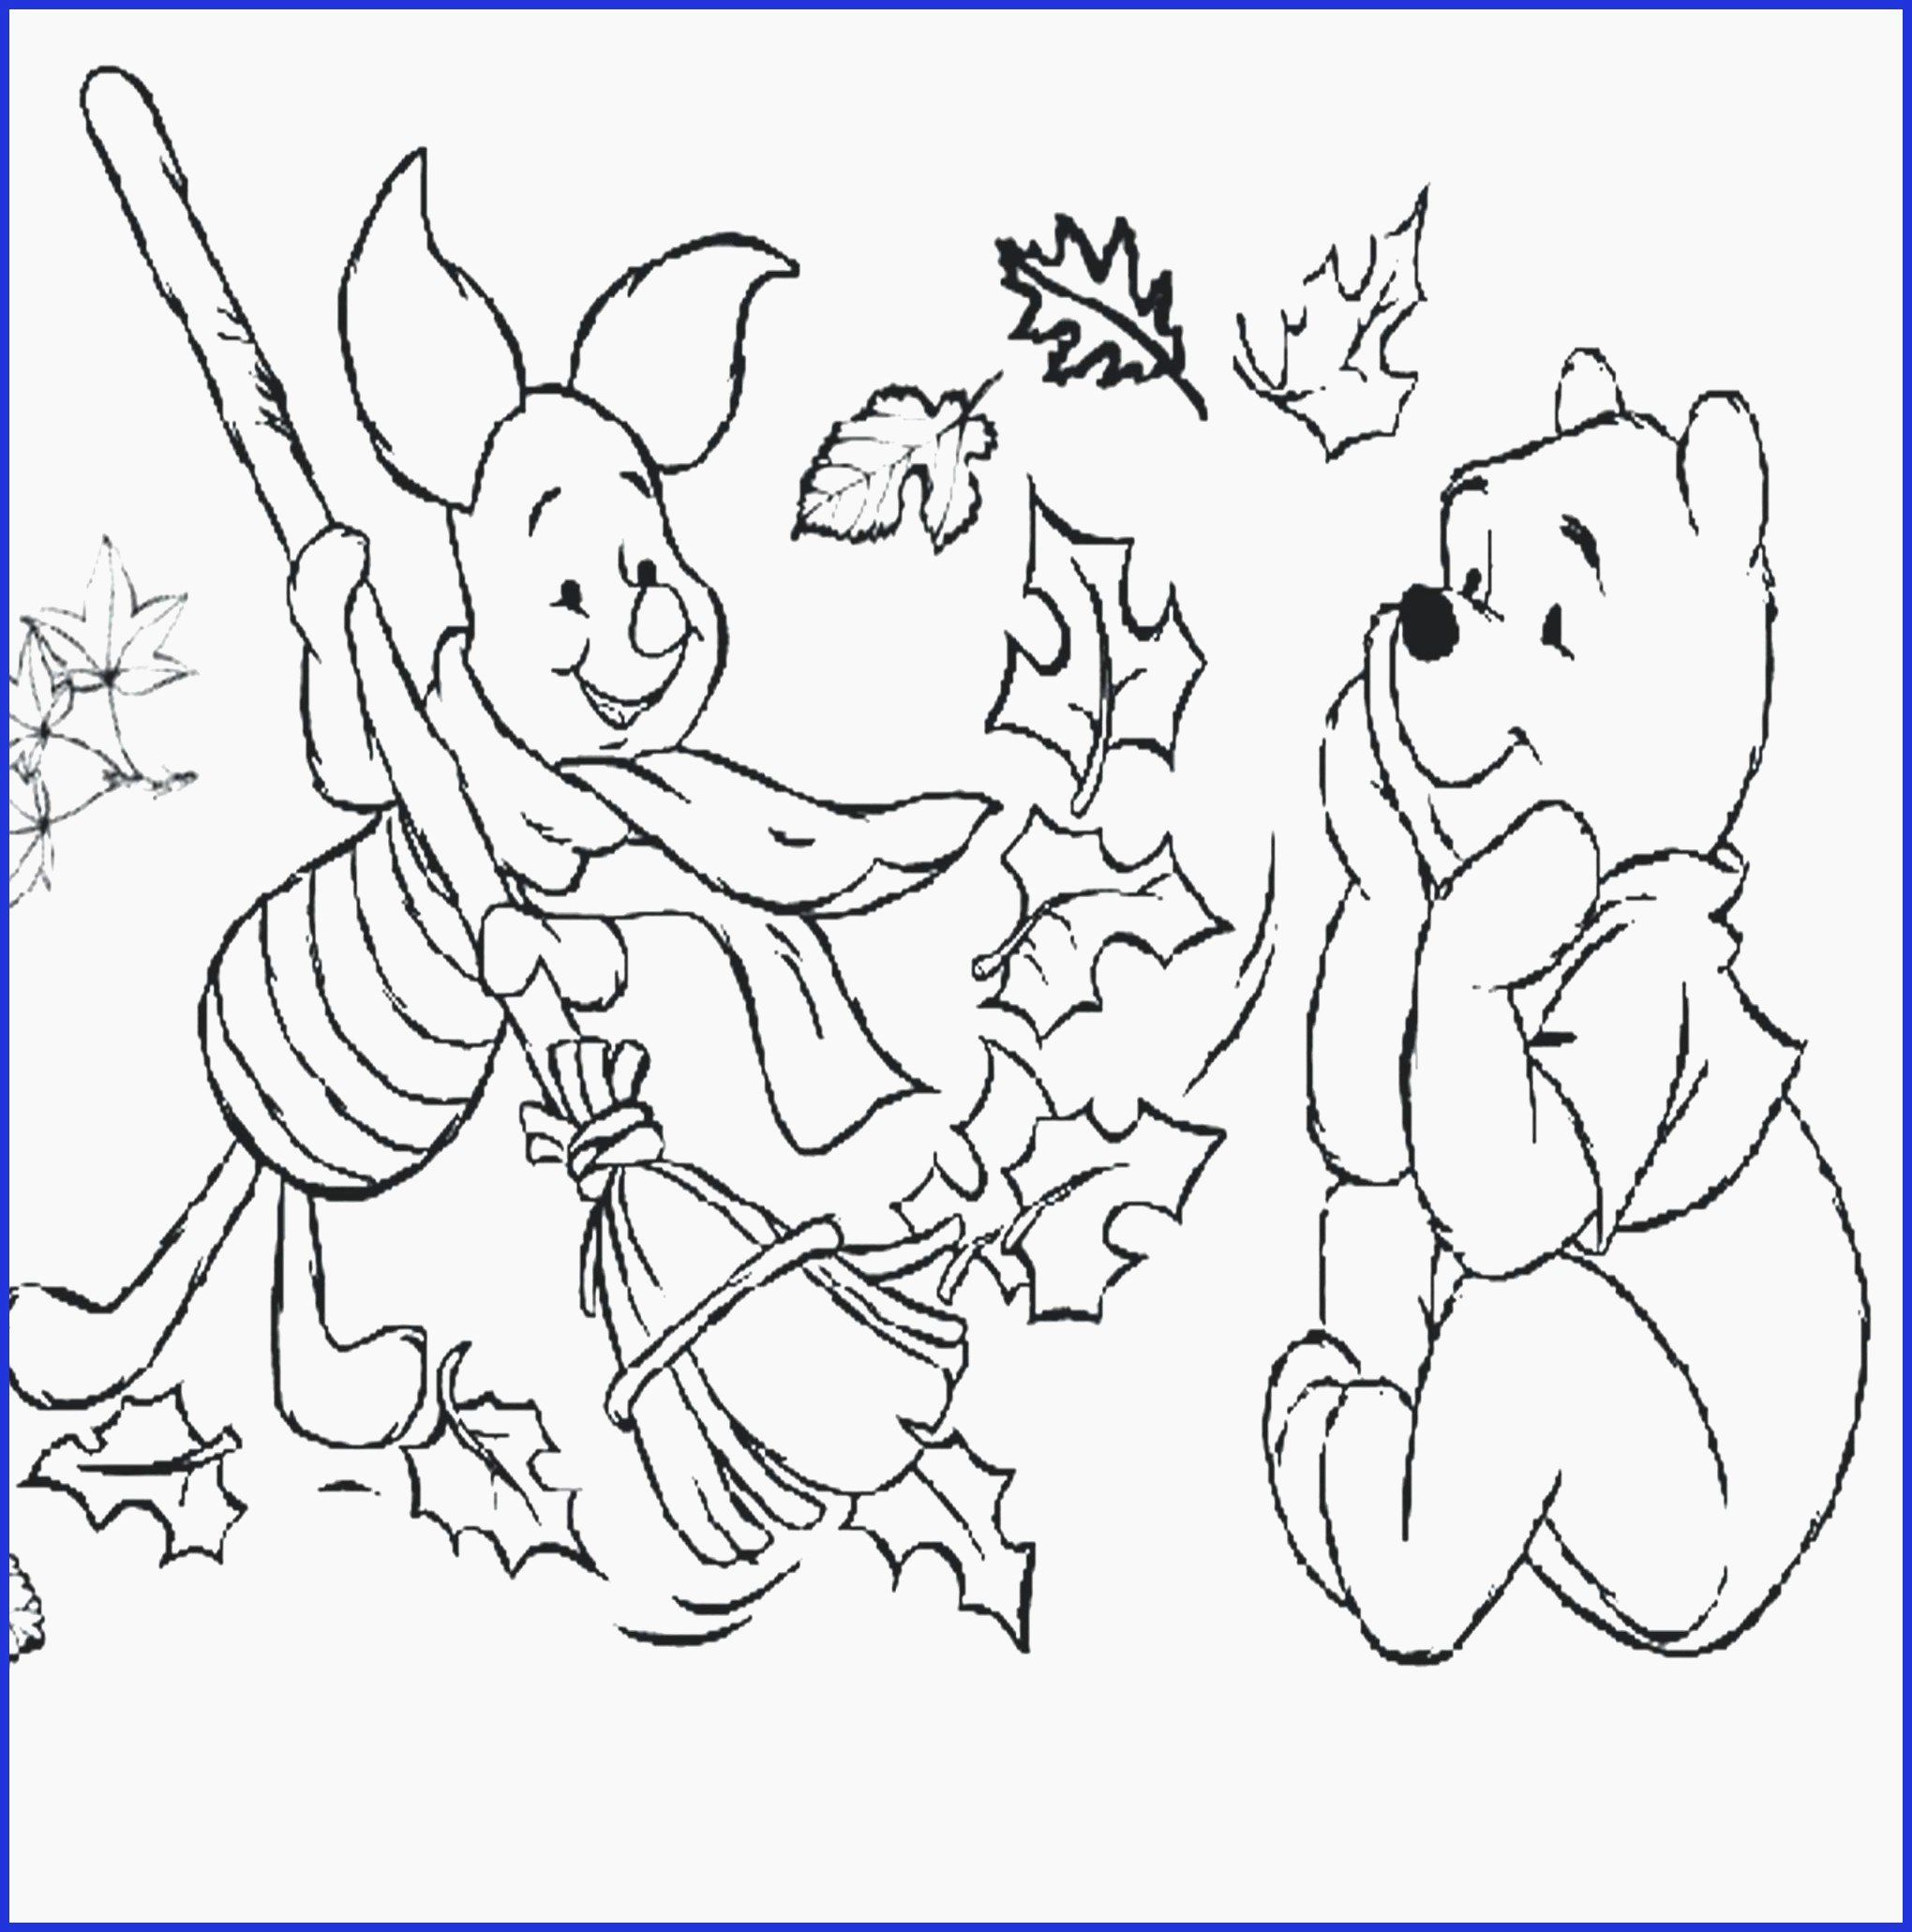 Turn Picture Into Coloring Book Awesome Kids Coloring App Awesome New Turn Into Coloring Pages Animal Coloring Pages Pokemon Coloring Pages Bear Coloring Pages